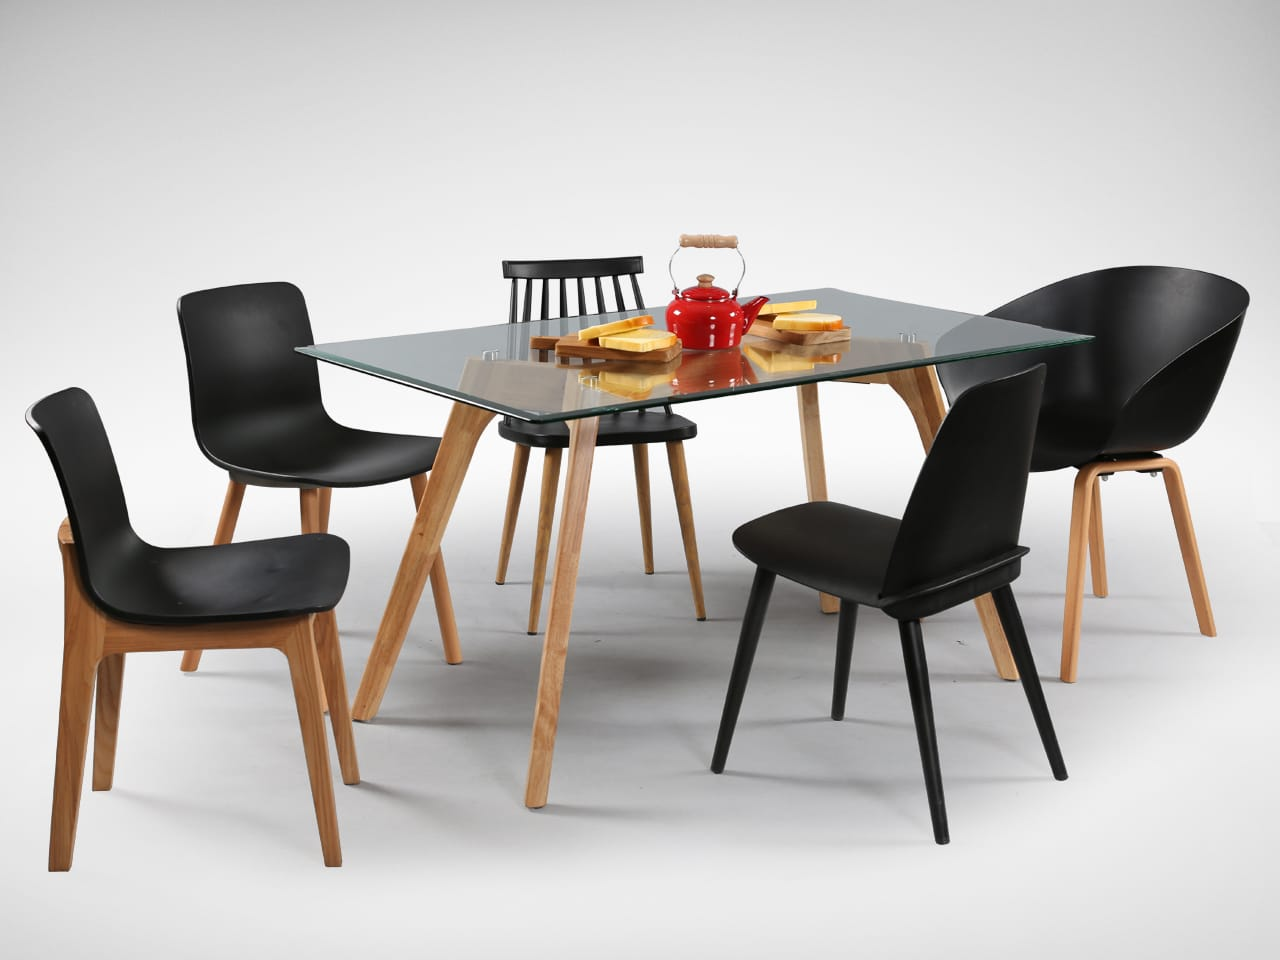 [Ariel Armchair, Plug + Square Leg Chair, Plug + Round Leg Chair, Choyu Chair, Troy Chair & Putin Glass Dining Table]<br />